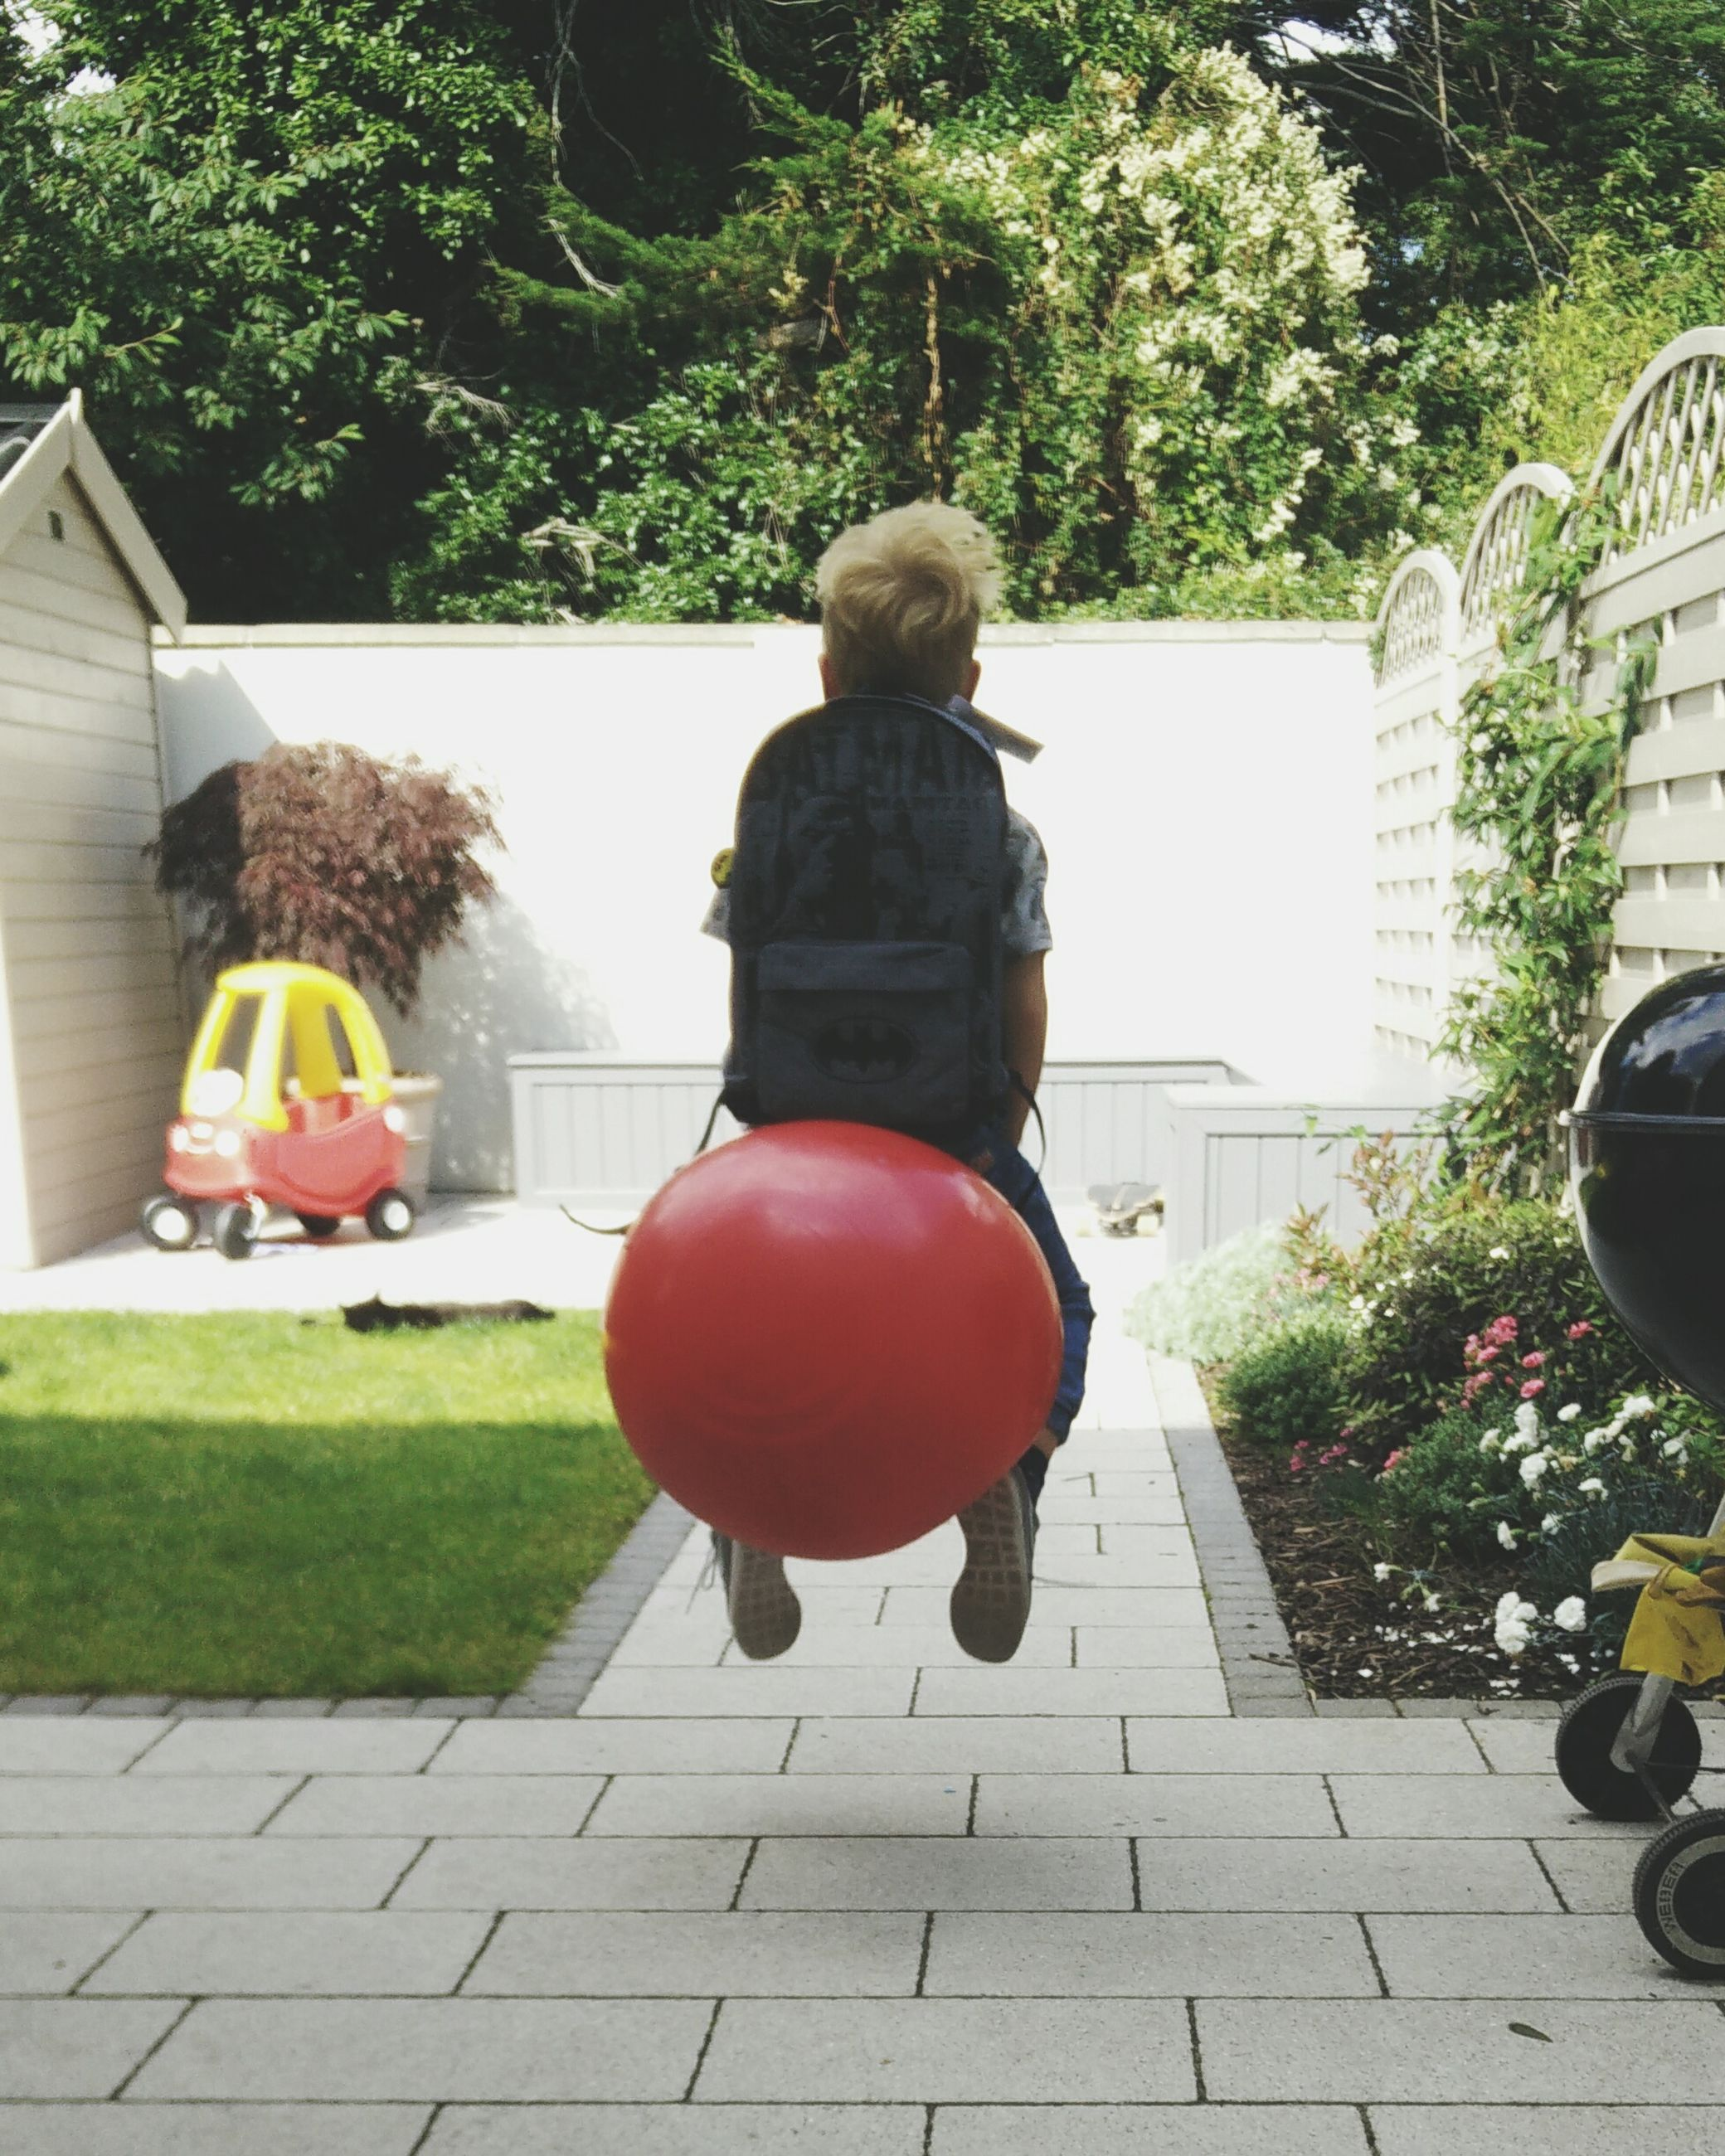 balloon, tree, rear view, full length, childhood, day, real people, outdoors, building exterior, boys, growth, lifestyles, girls, architecture, helium balloon, people